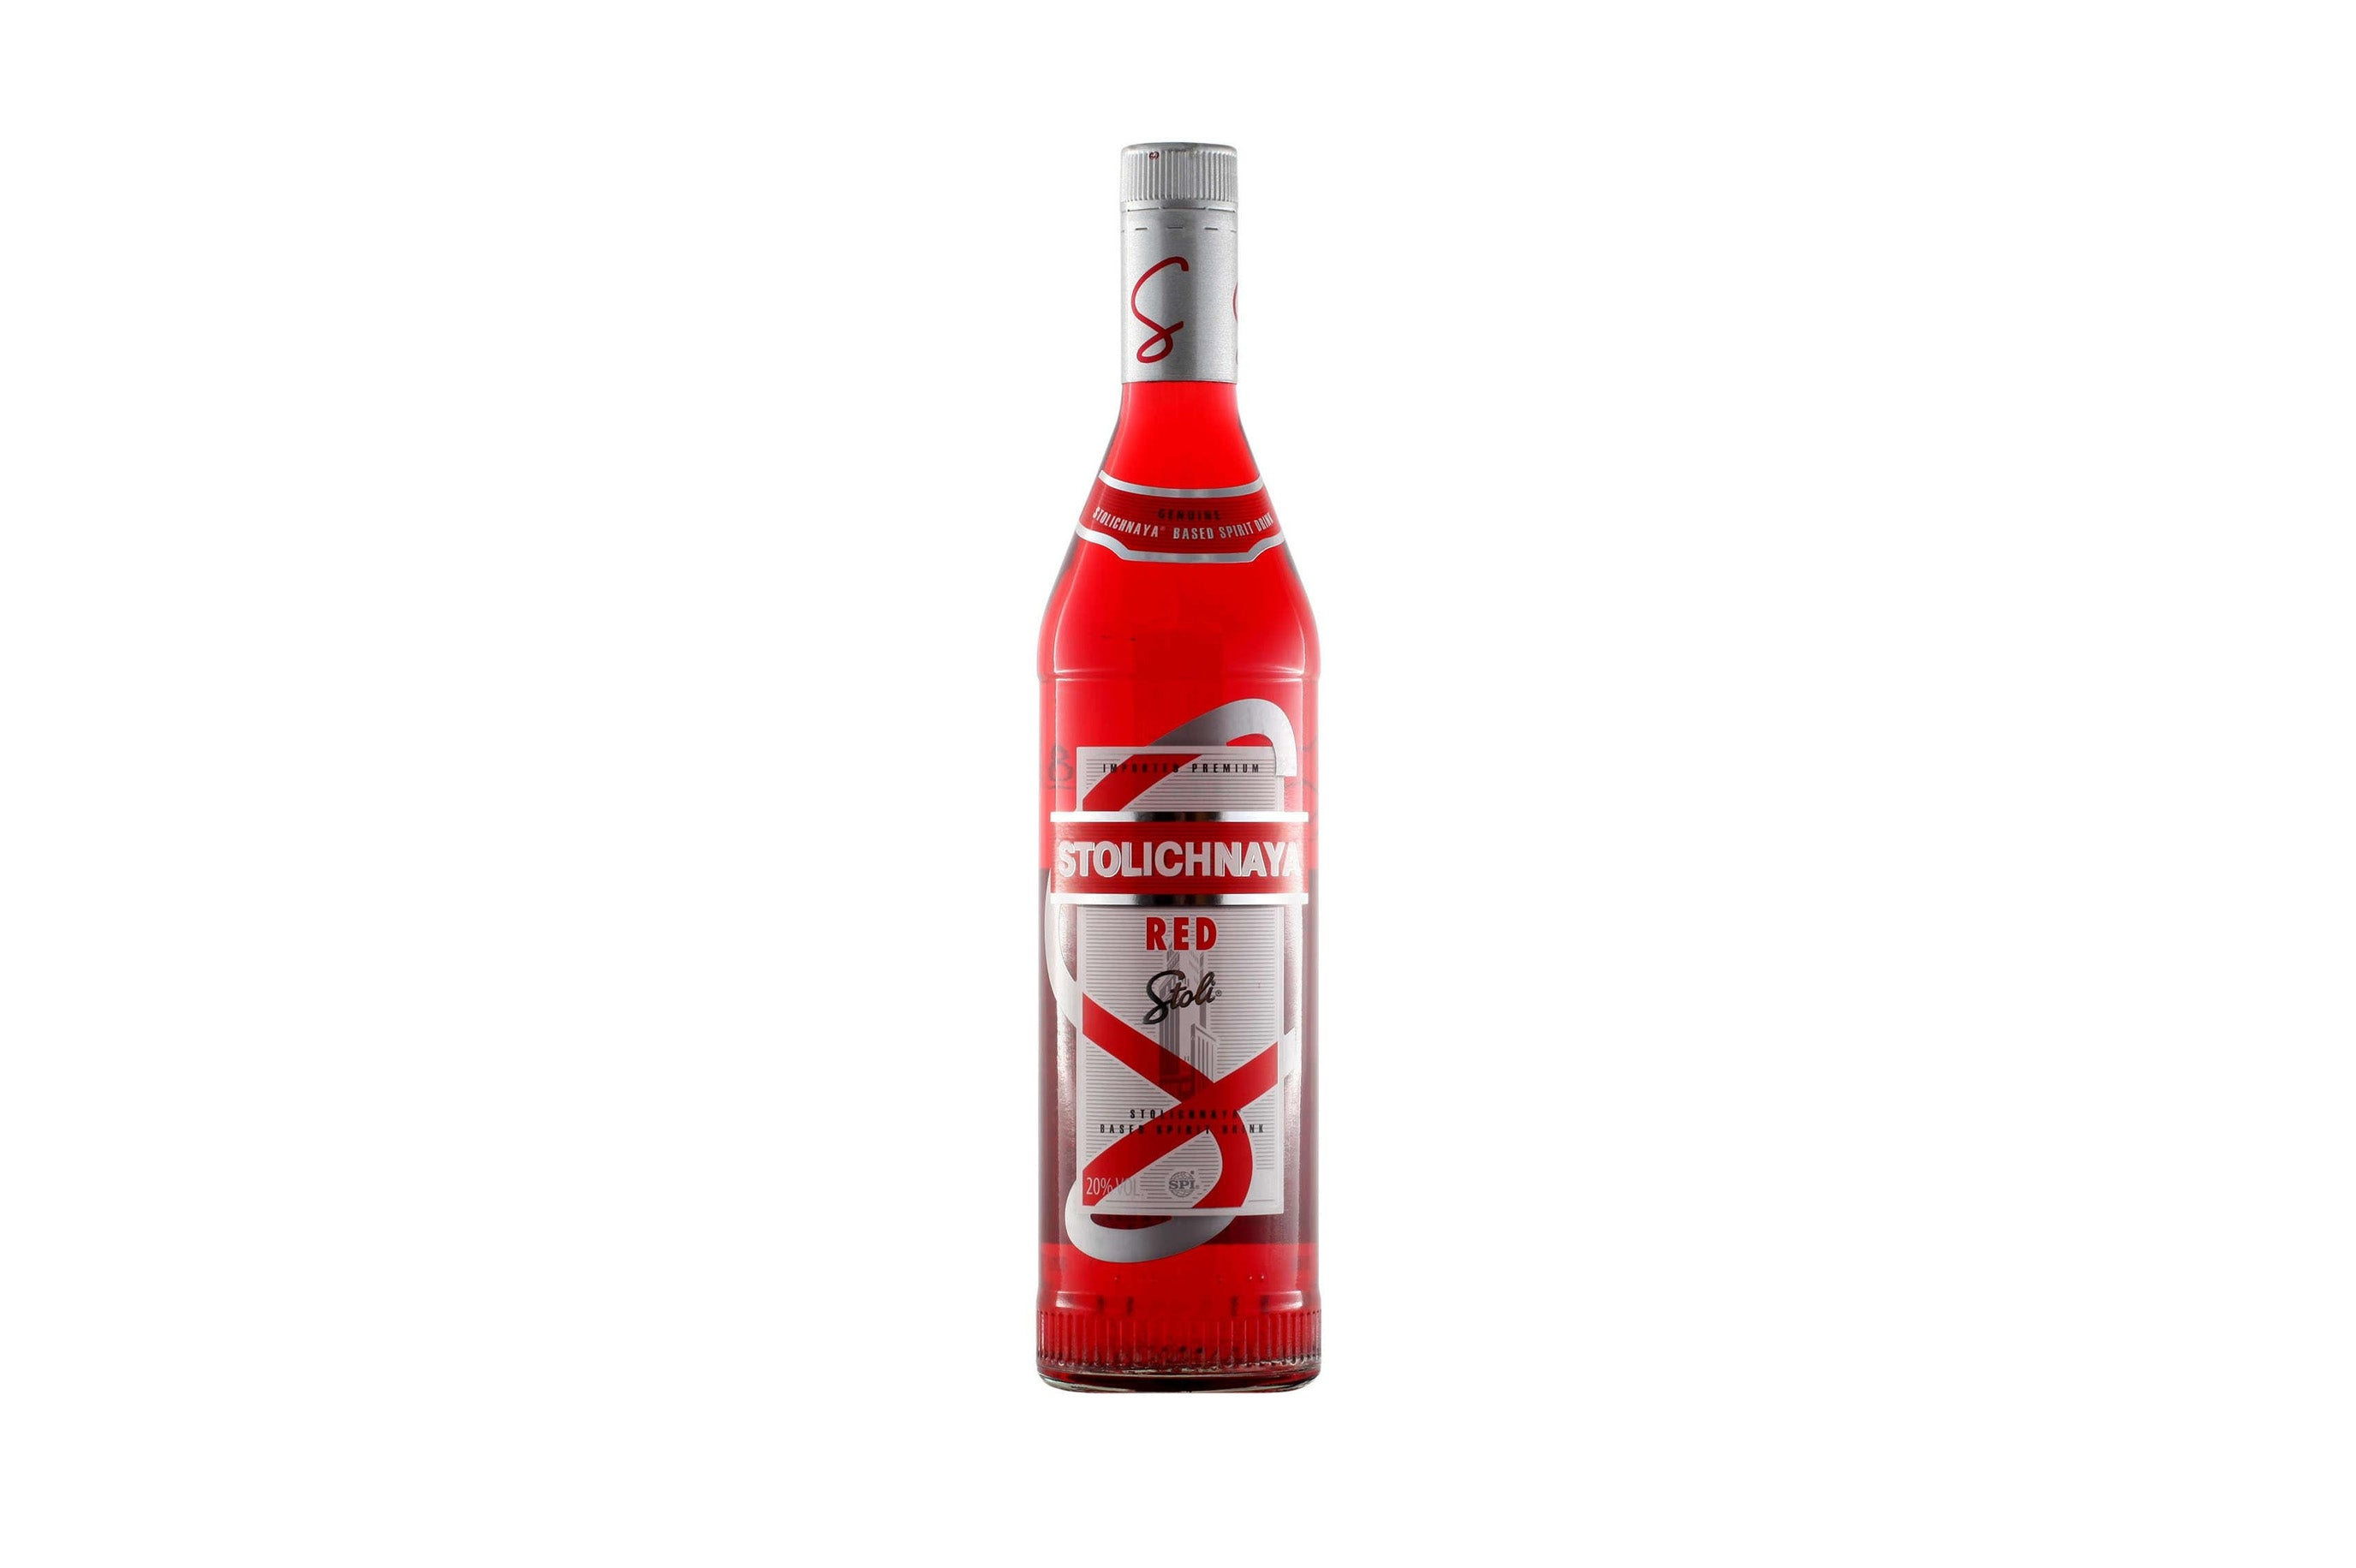 STOLICHNAYA RED VODKA 0.7LT